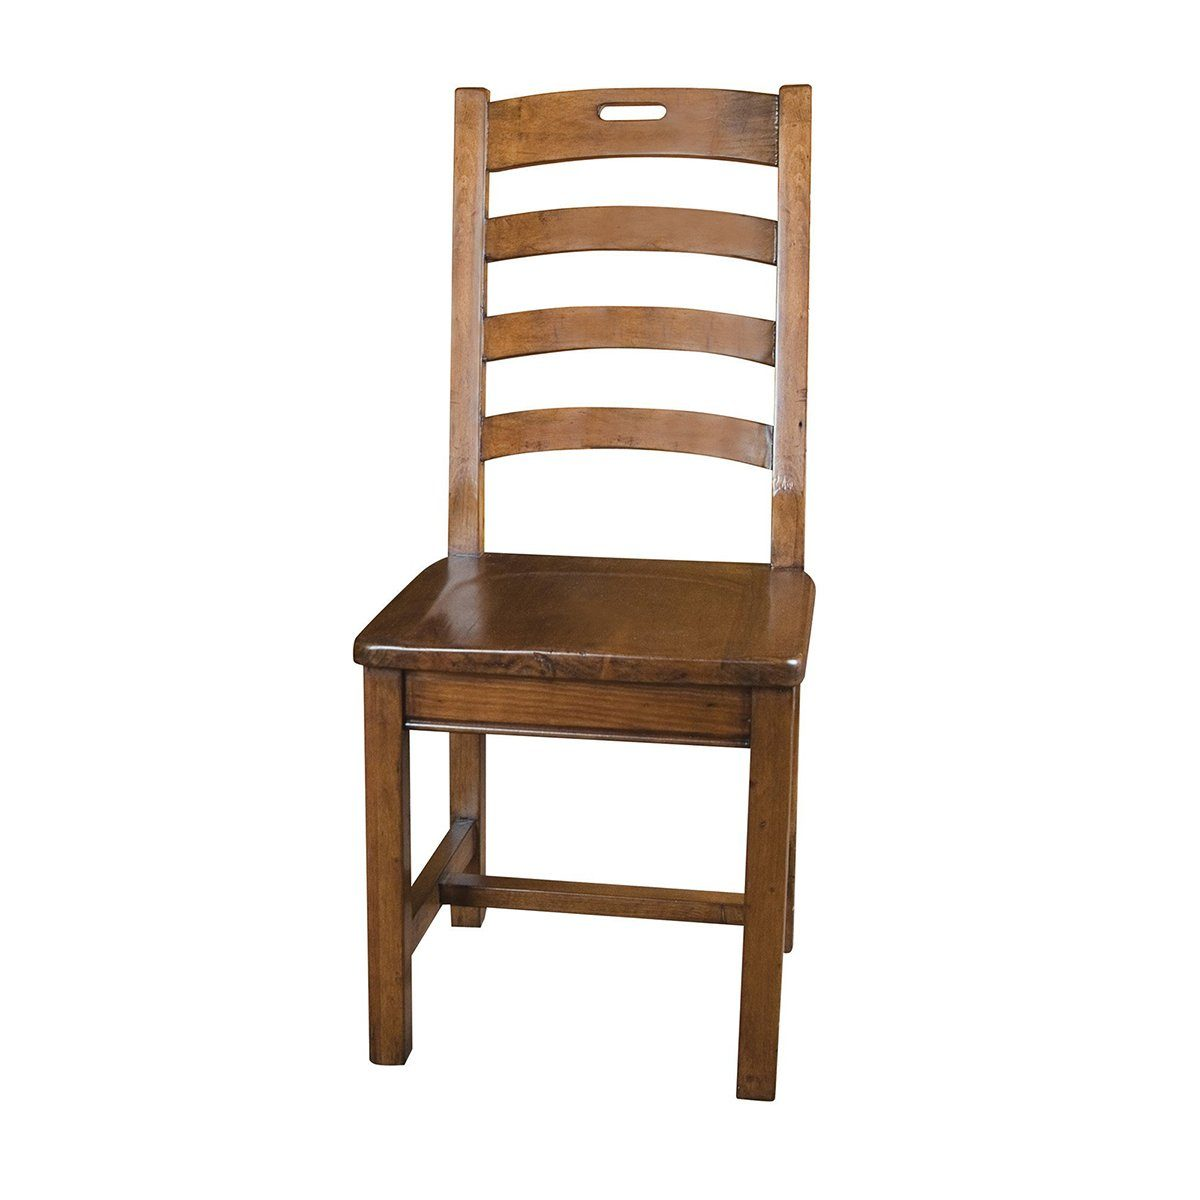 Irish Coast Hand-Hole Chair - African Dusk Dining Chairs Showhome Furniture